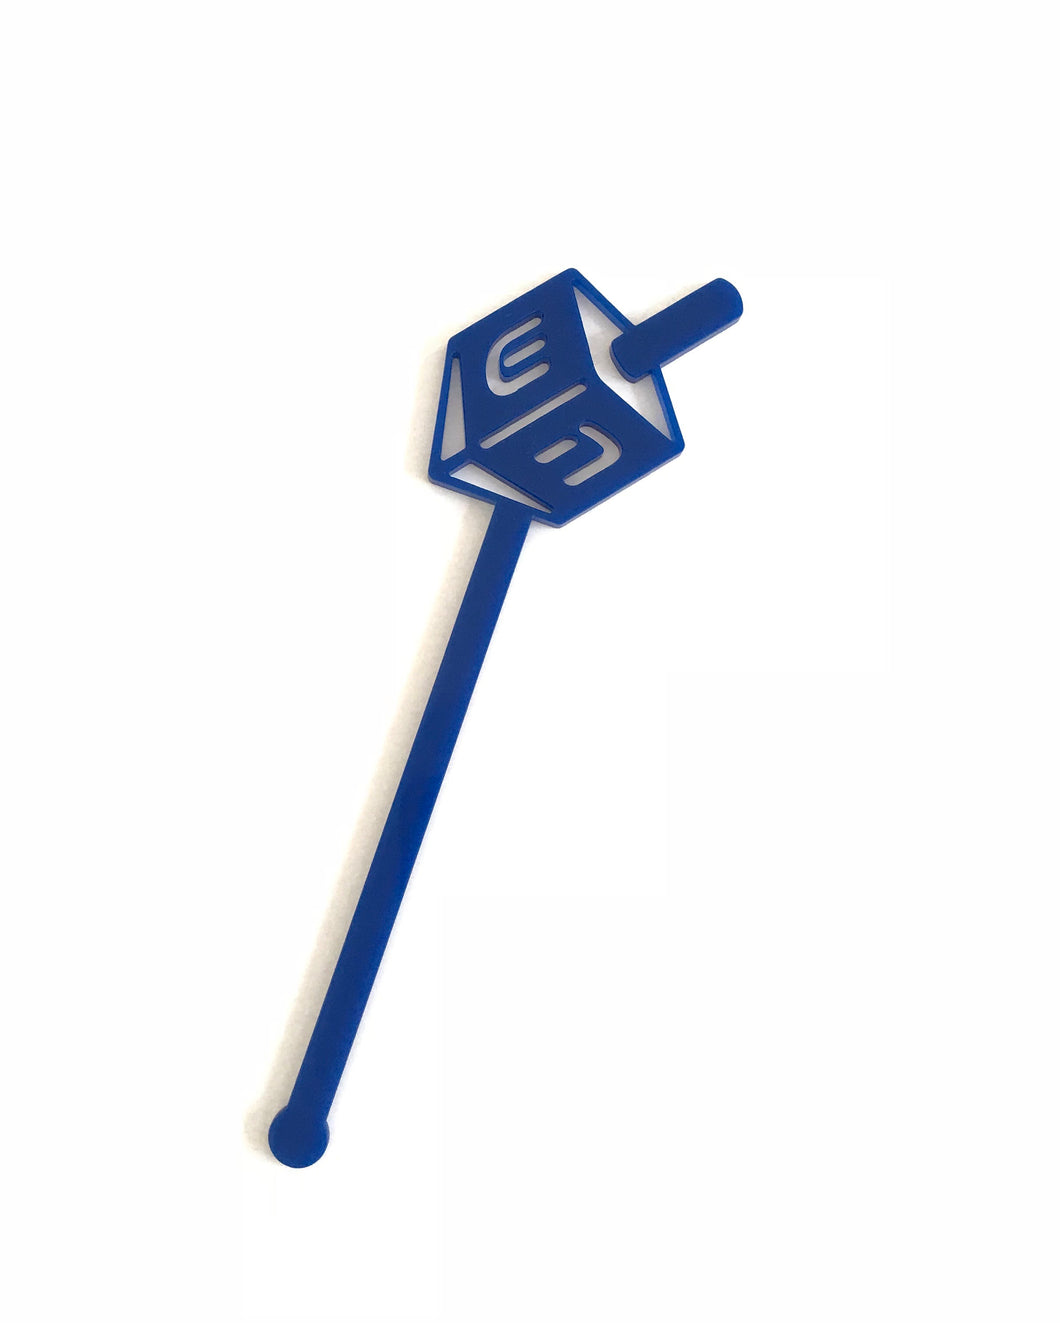 Dreidel Stir Sticks